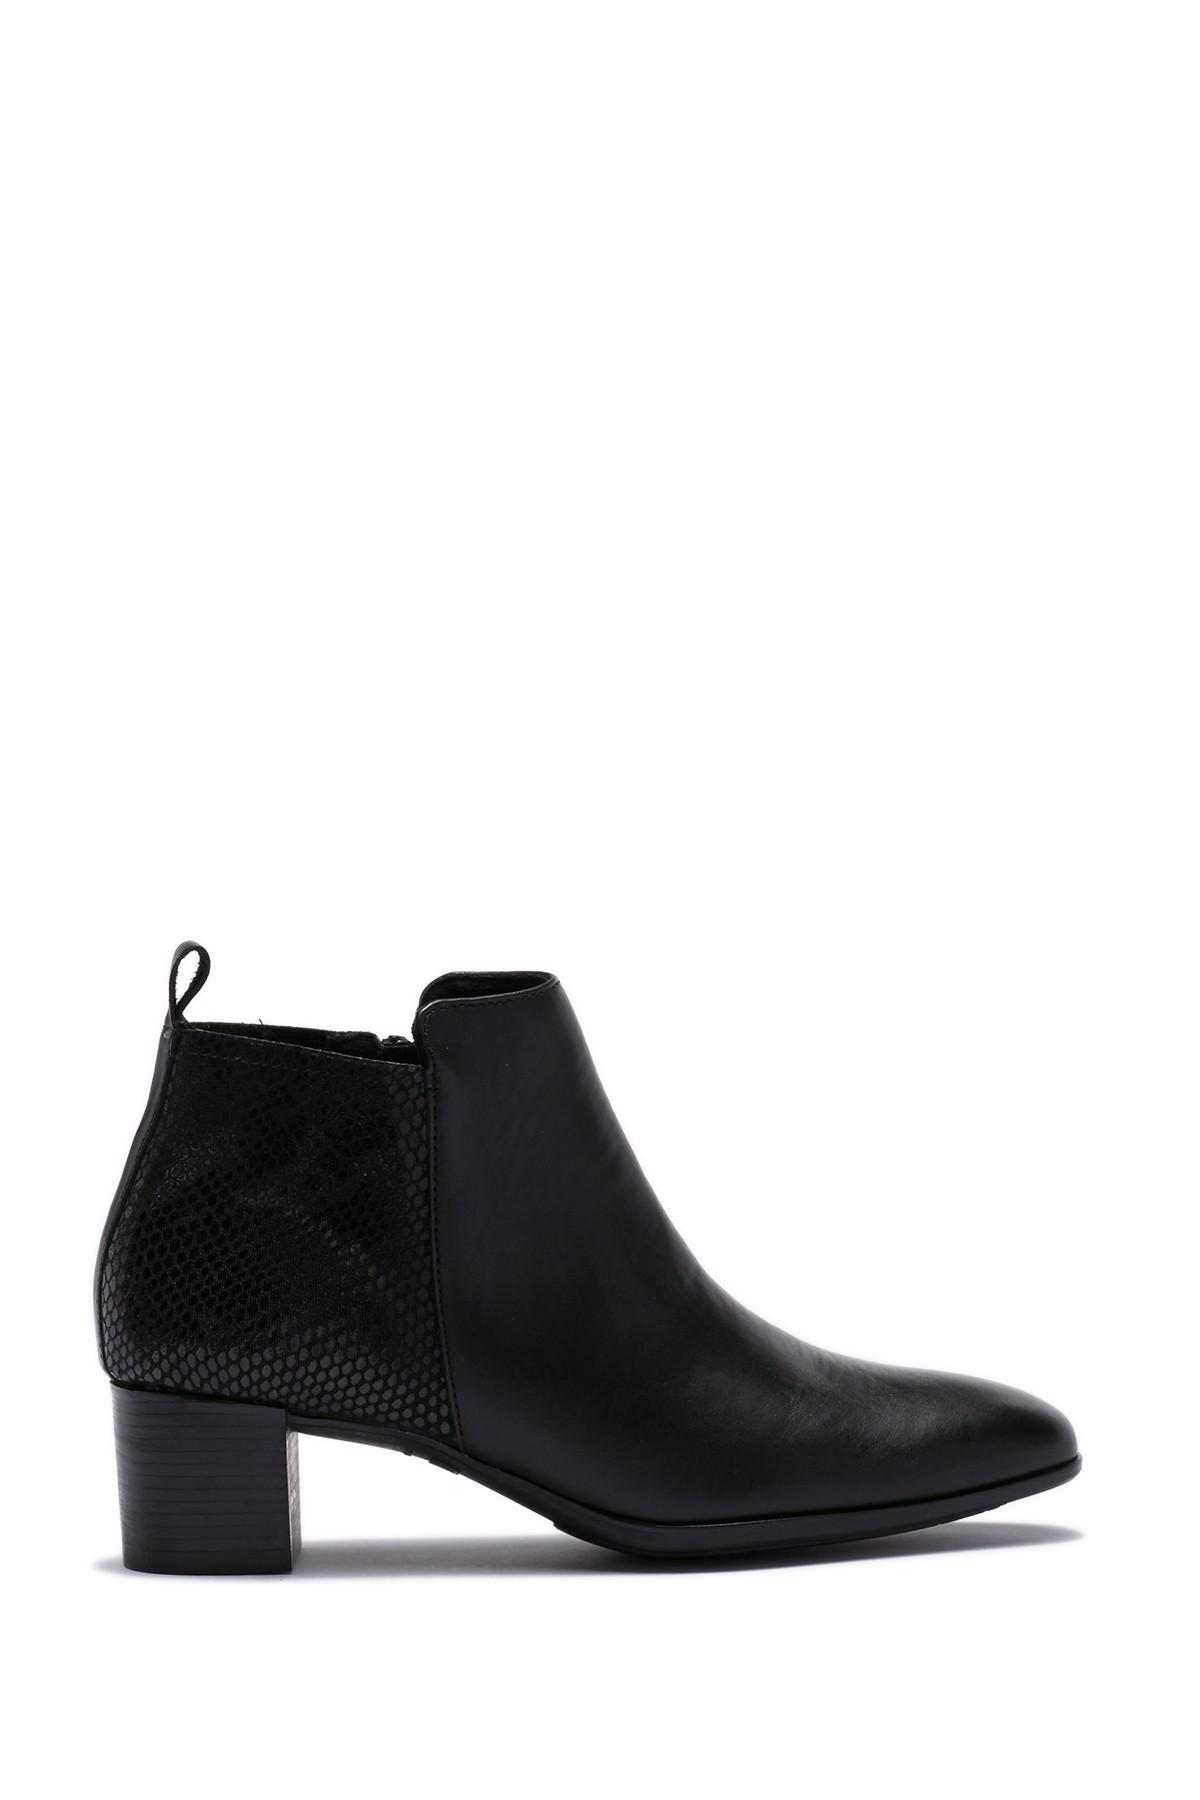 67fbbd21662 Lyst - Munro Alix Leather Bootie - Multiple Widths Available in Black